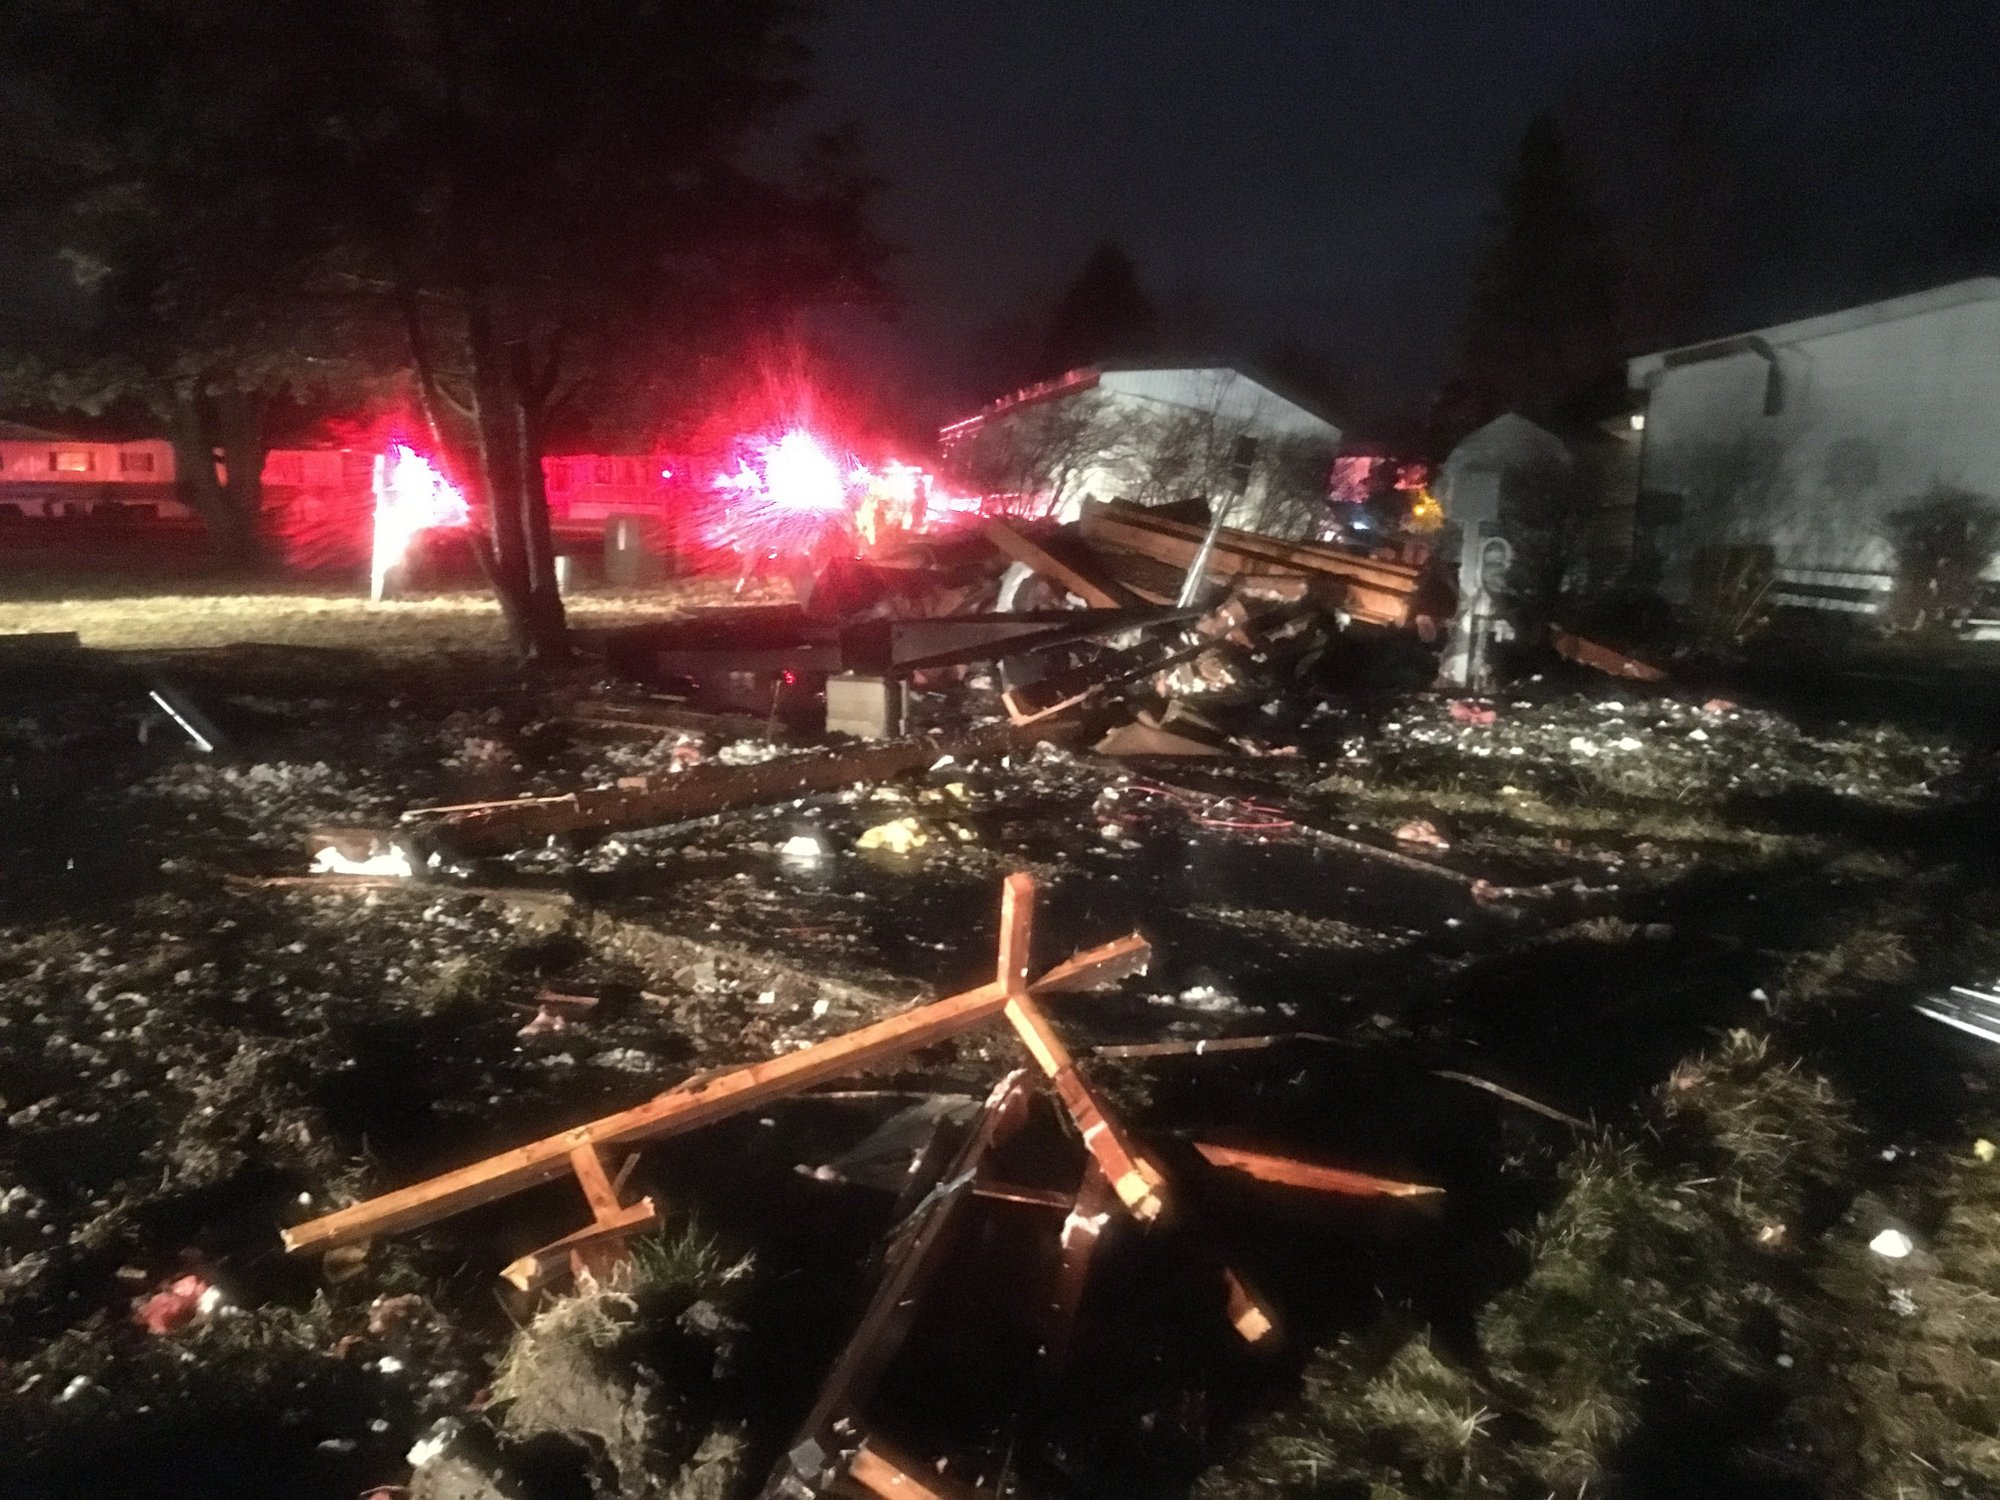 Weather Service 4 Tornadoes Touched Down In Mid Michigan Hurricane delta makes landfall in southwestern louisiana. 4 tornadoes touched down in mid michigan